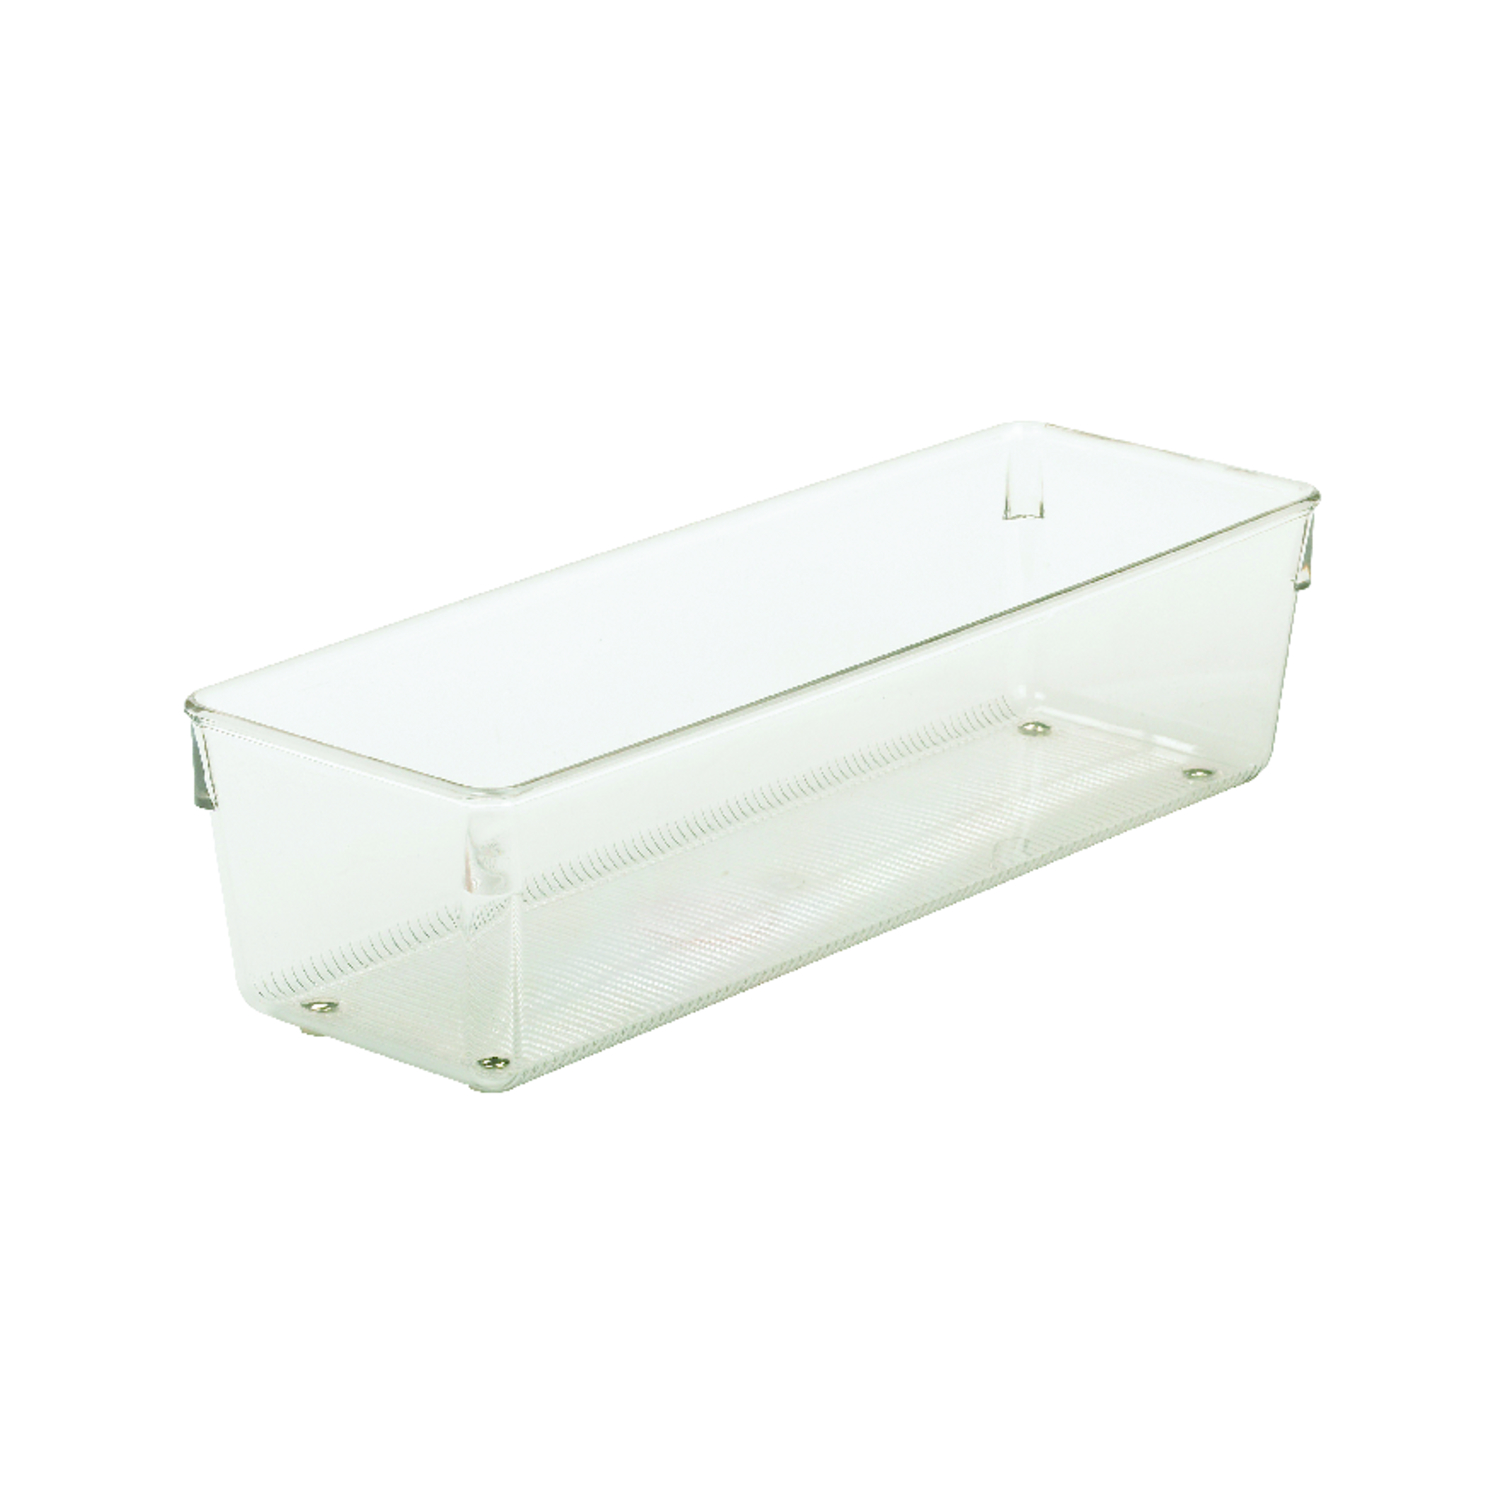 InterDesign  3 in. H x 4 in. W x 12 in. L Plastic  Drawer Organizer  Clear